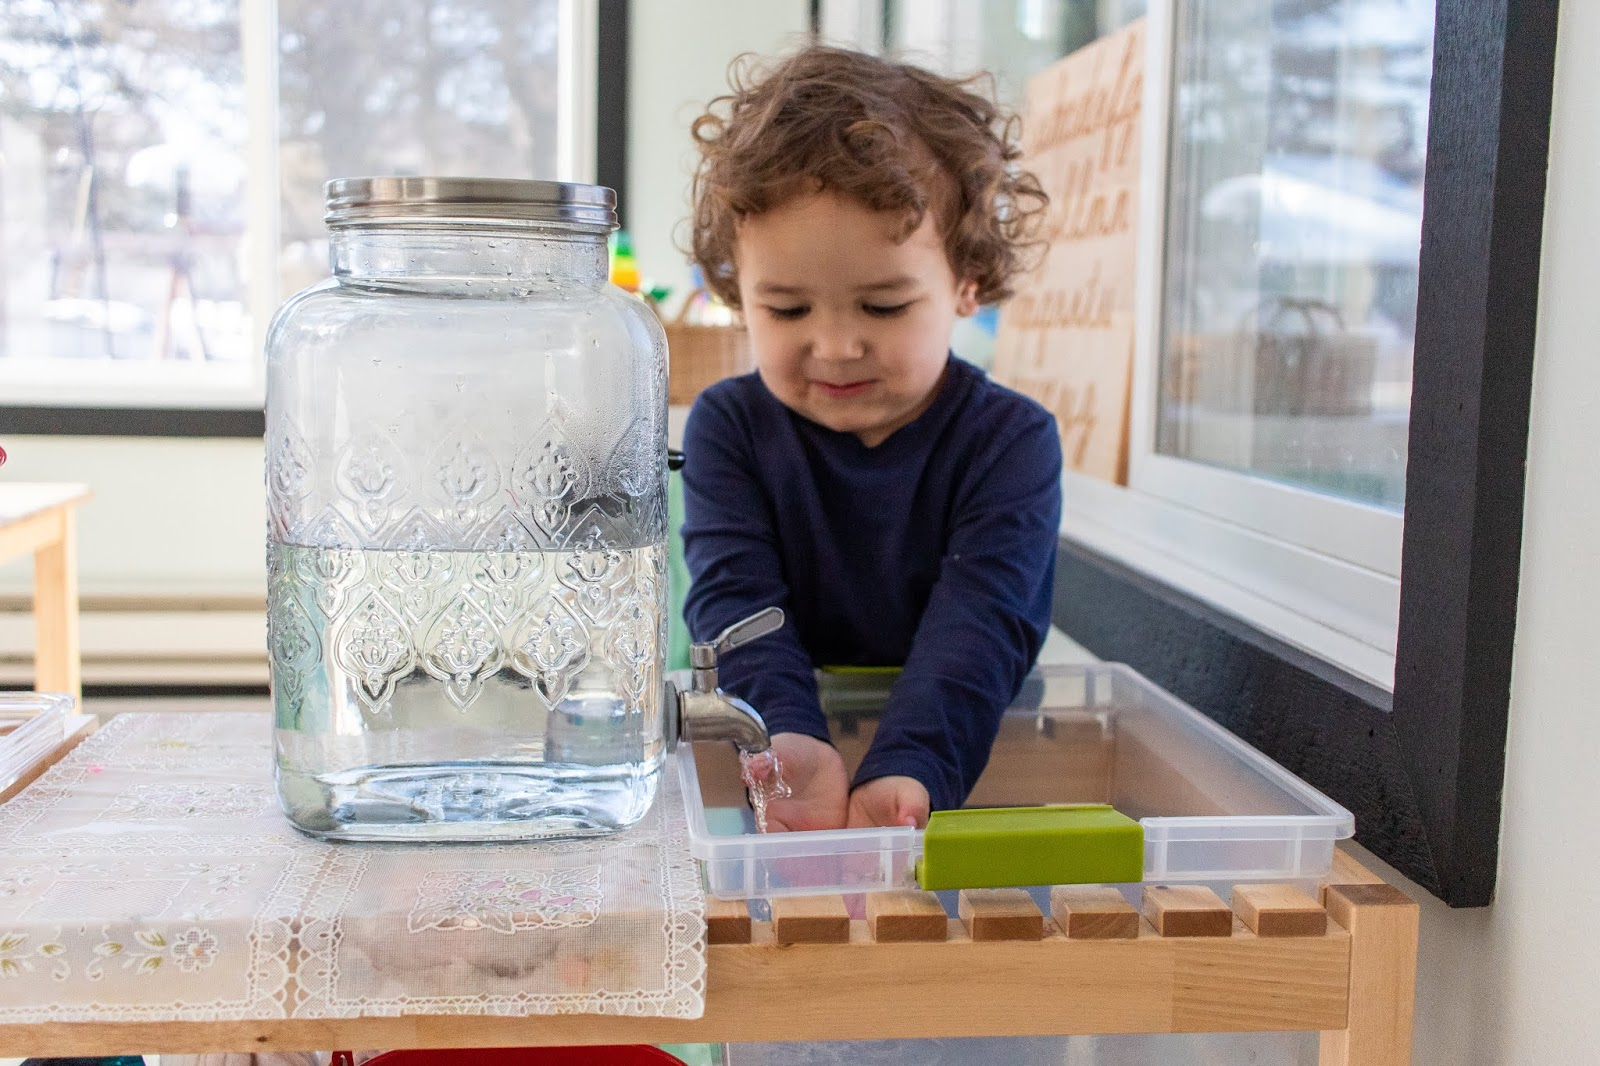 3 Montessori ways to consider adding independent hand washing to your home for your toddler.